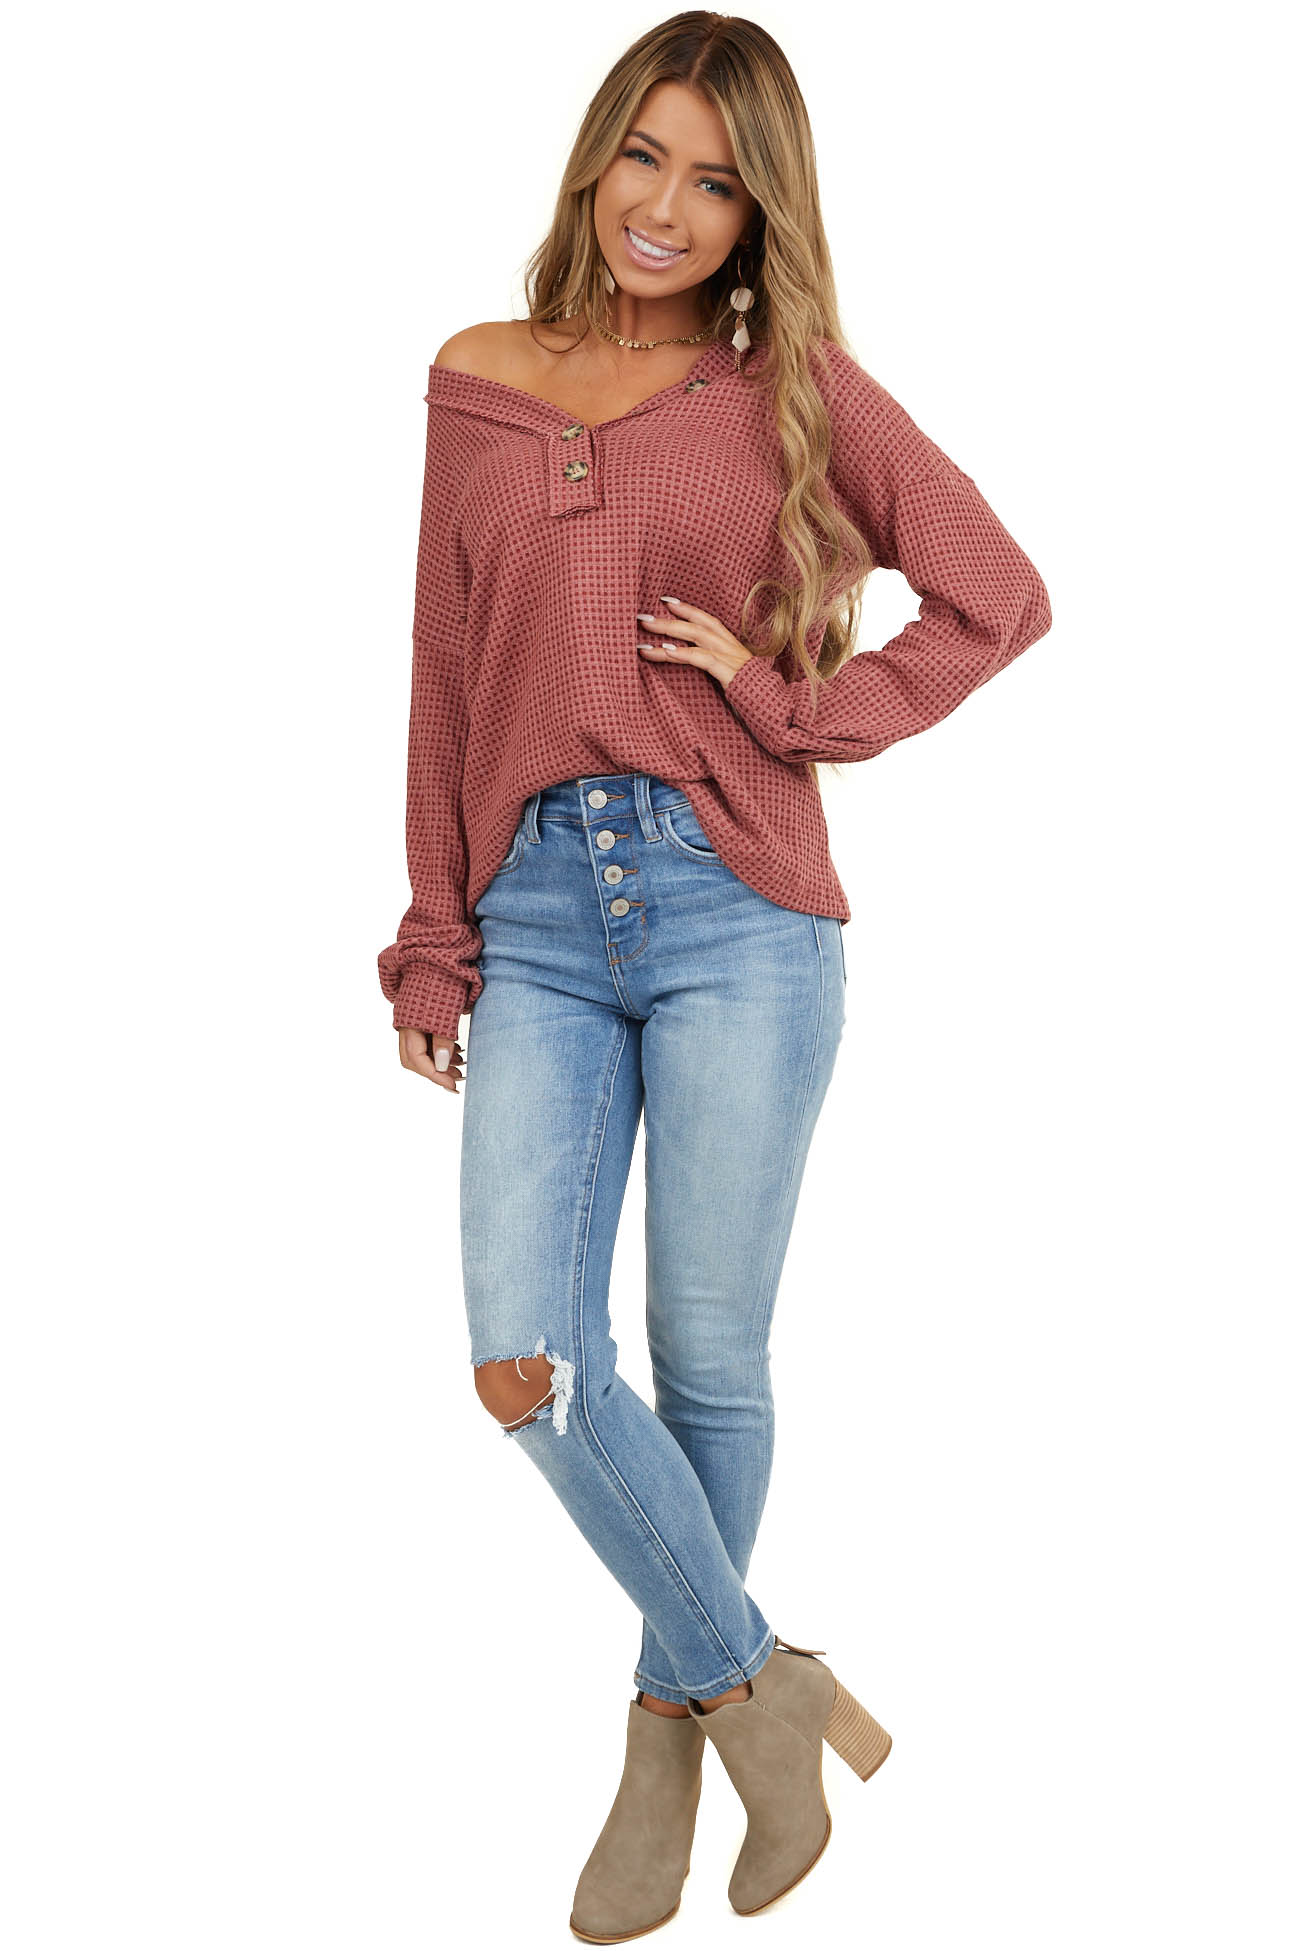 Marsala Waffle Knit Top with Front Button Details